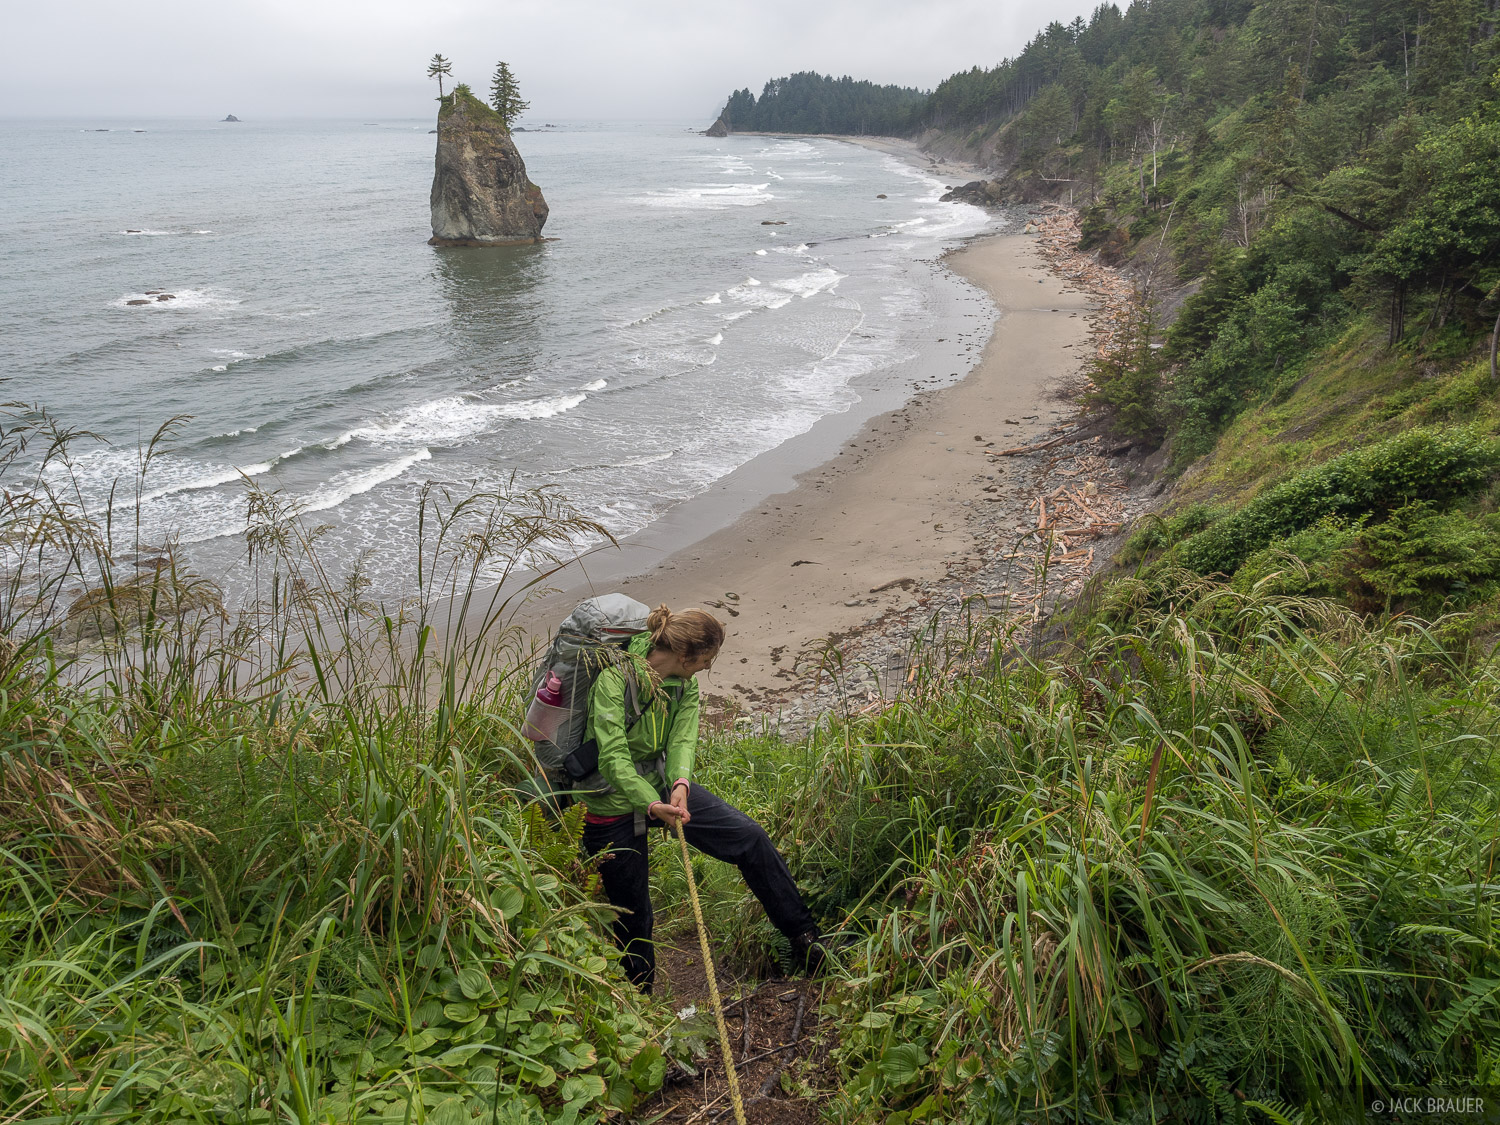 A rope-assisted descent down a steep portion of trail over a rocky headland between beaches.